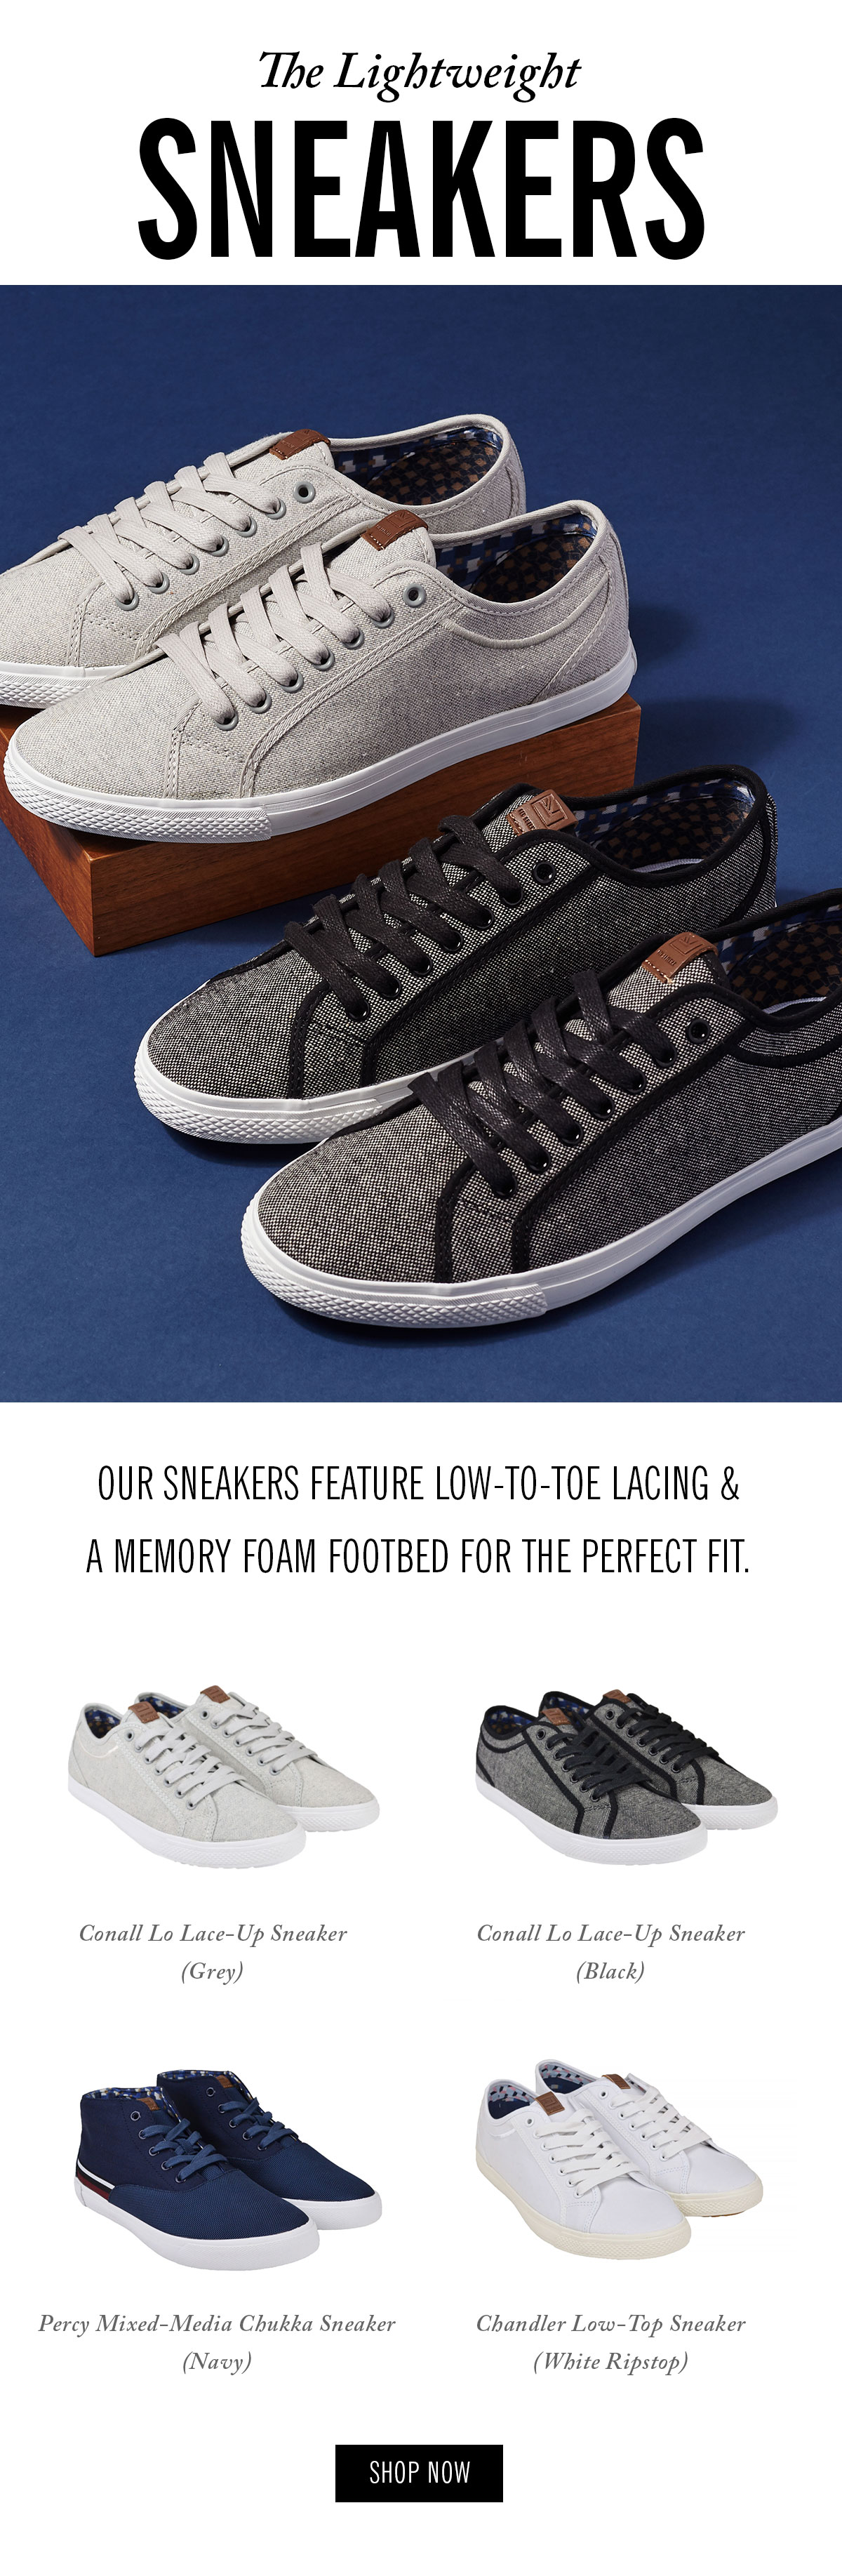 The Lightweight Sneakers   photo of multiple pairs of sneakers   Our sneakers feature low-to-toe lacing & a memory foam footbed for the perfect fit.   Shop Now